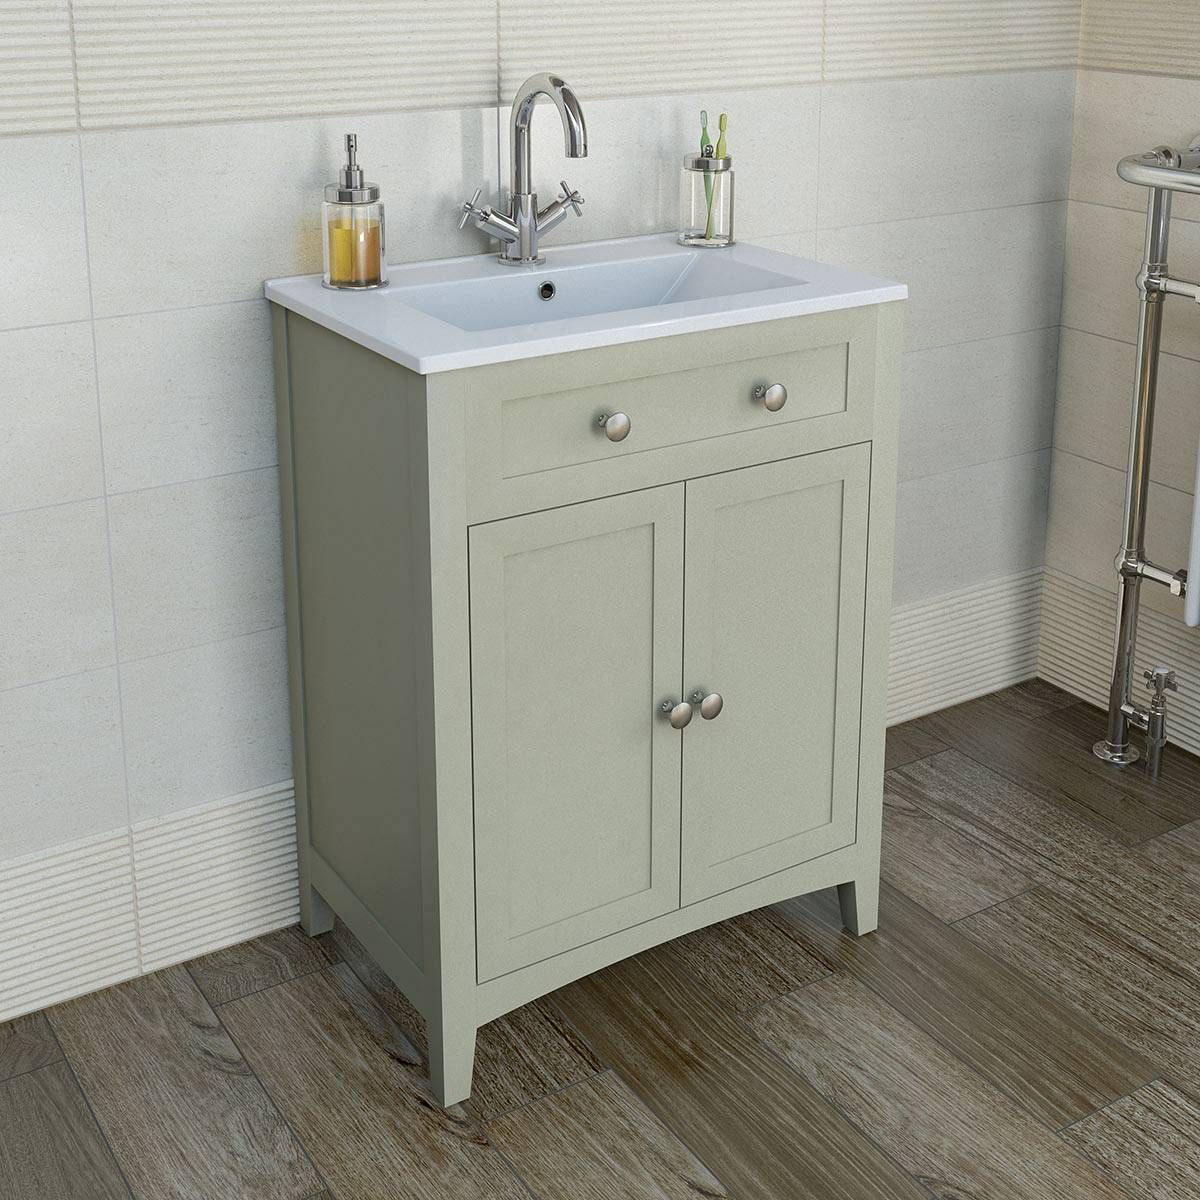 Bathroom Sink Vanity Units Uk Sink And Faucet : Home Decorating Ideas  PaANwQQxpmis free HD Wallpaper. Thanks for you visiting Bathroom Sink.